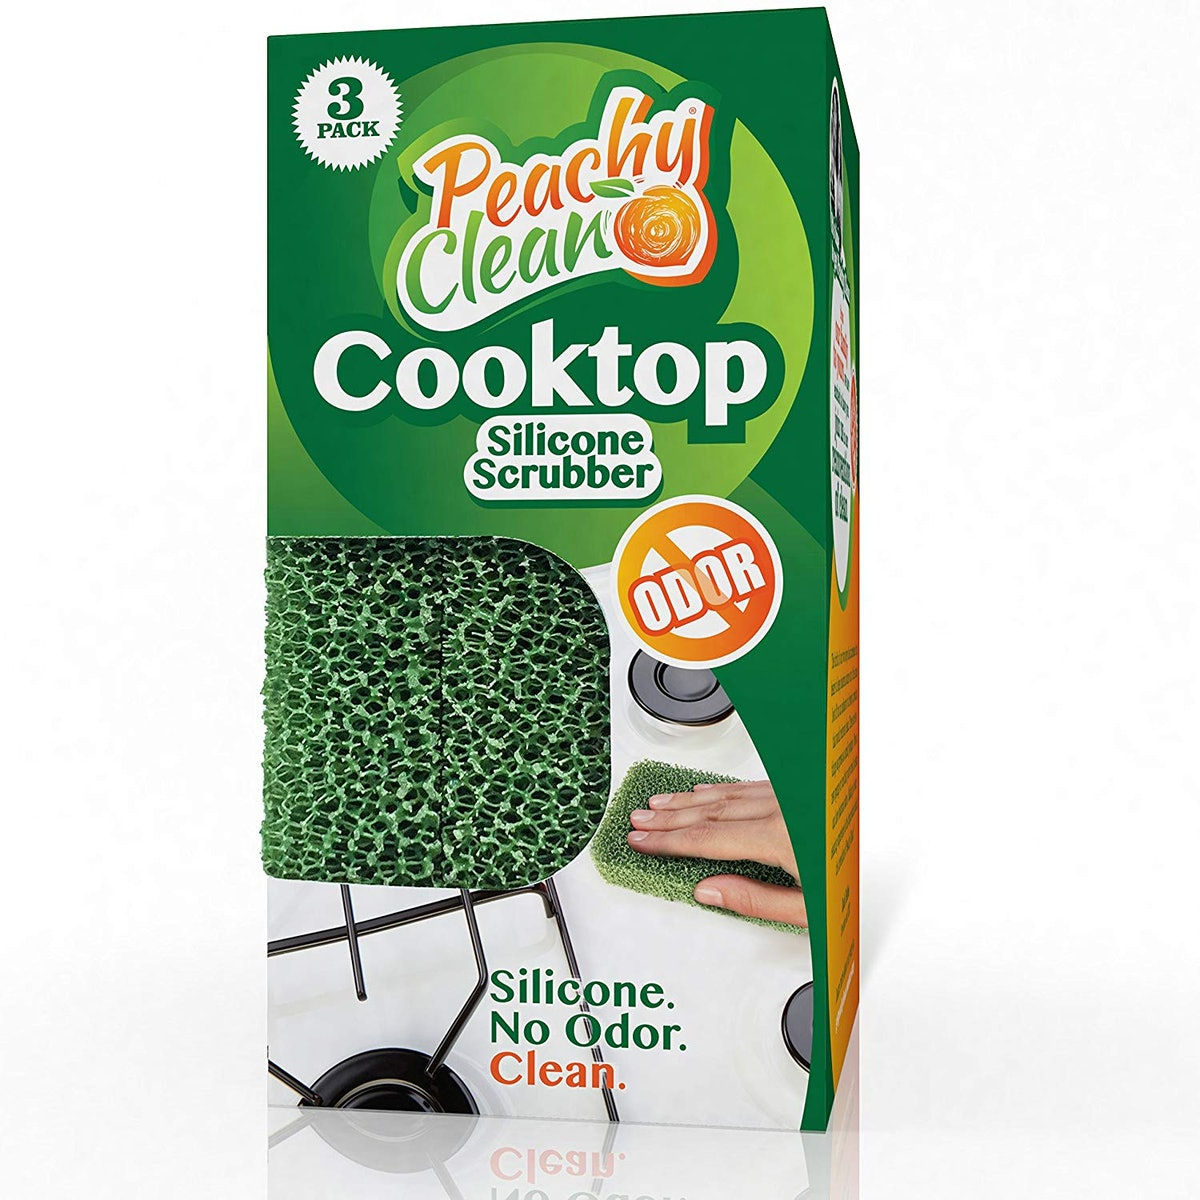 Peachy Clean Antimicrobial Cooktop Scrubbers (3 Pack)